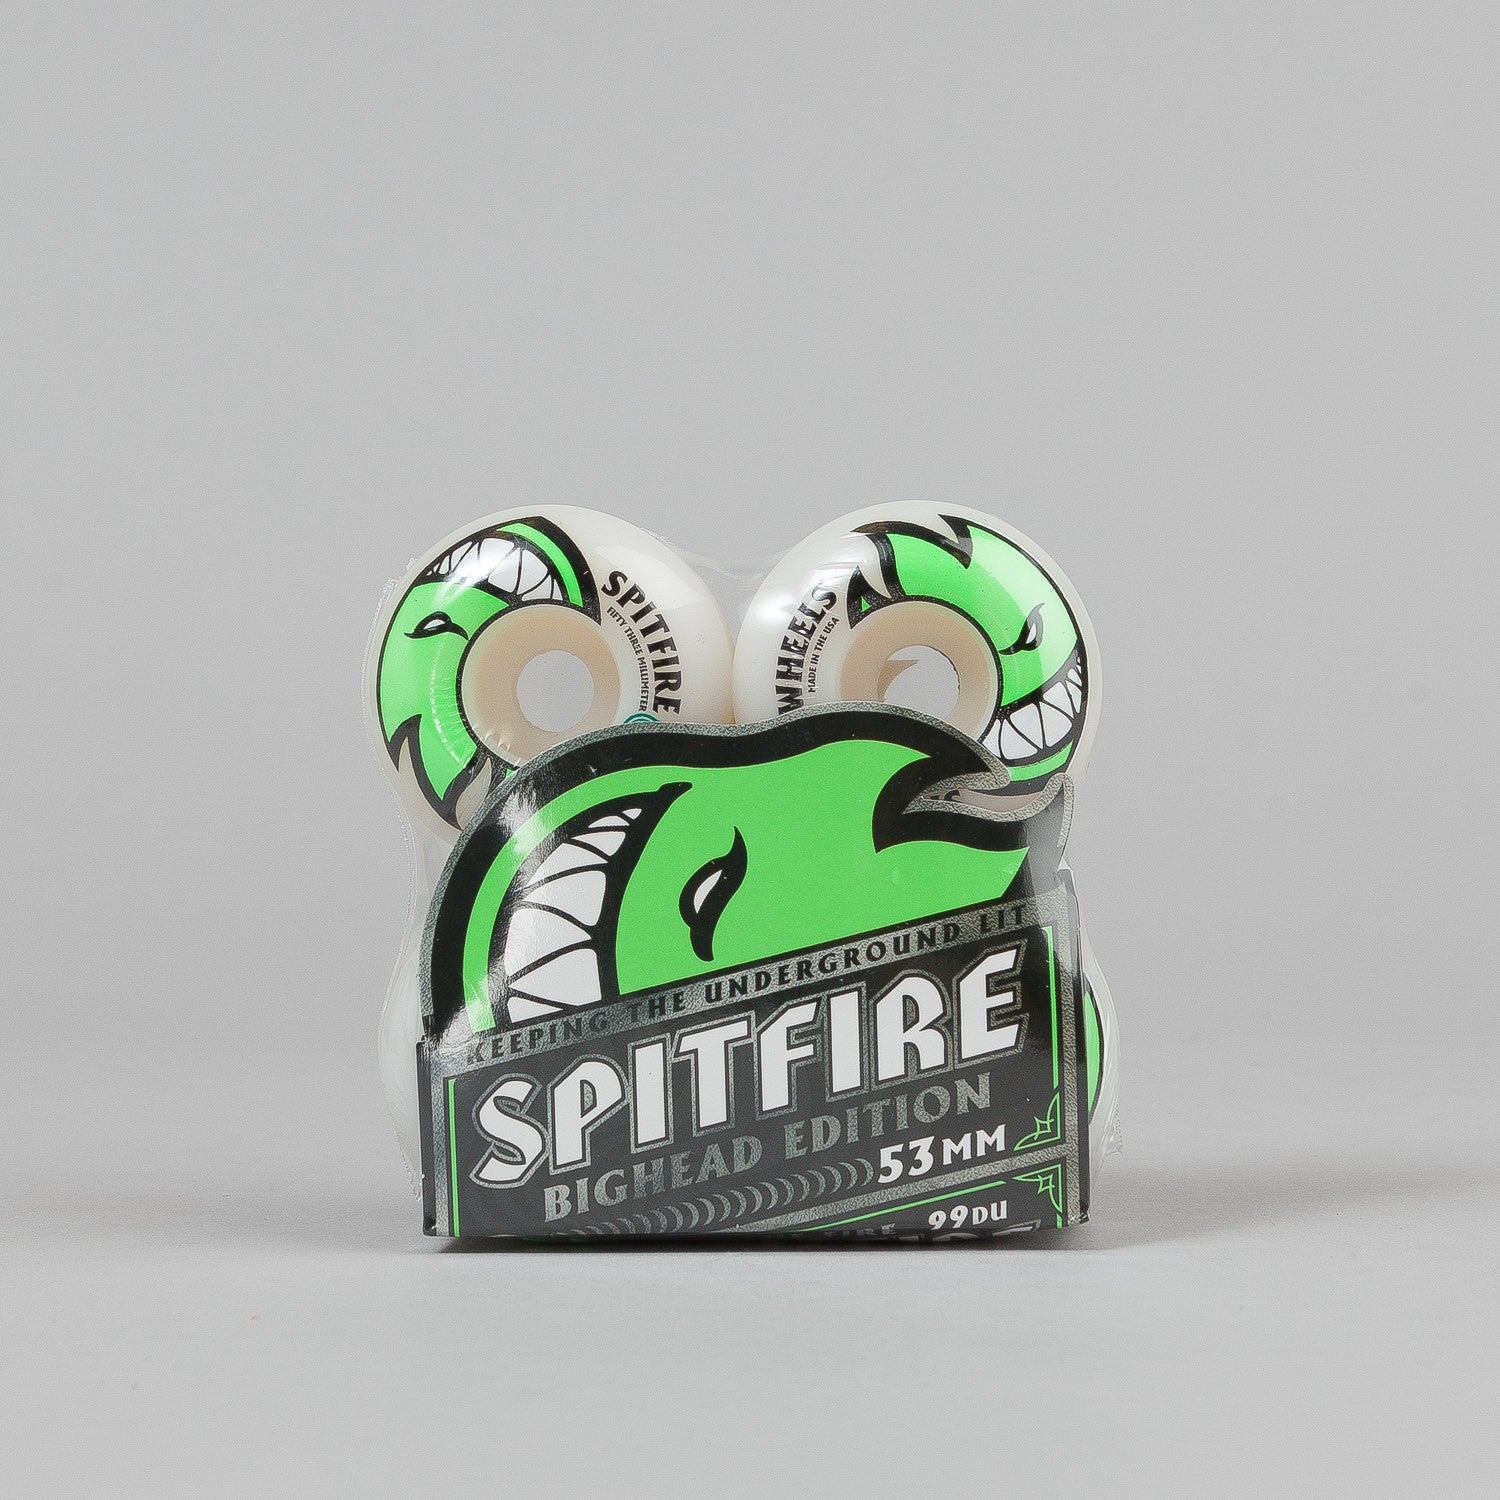 Spitfire Bighead Wheels 53mm White